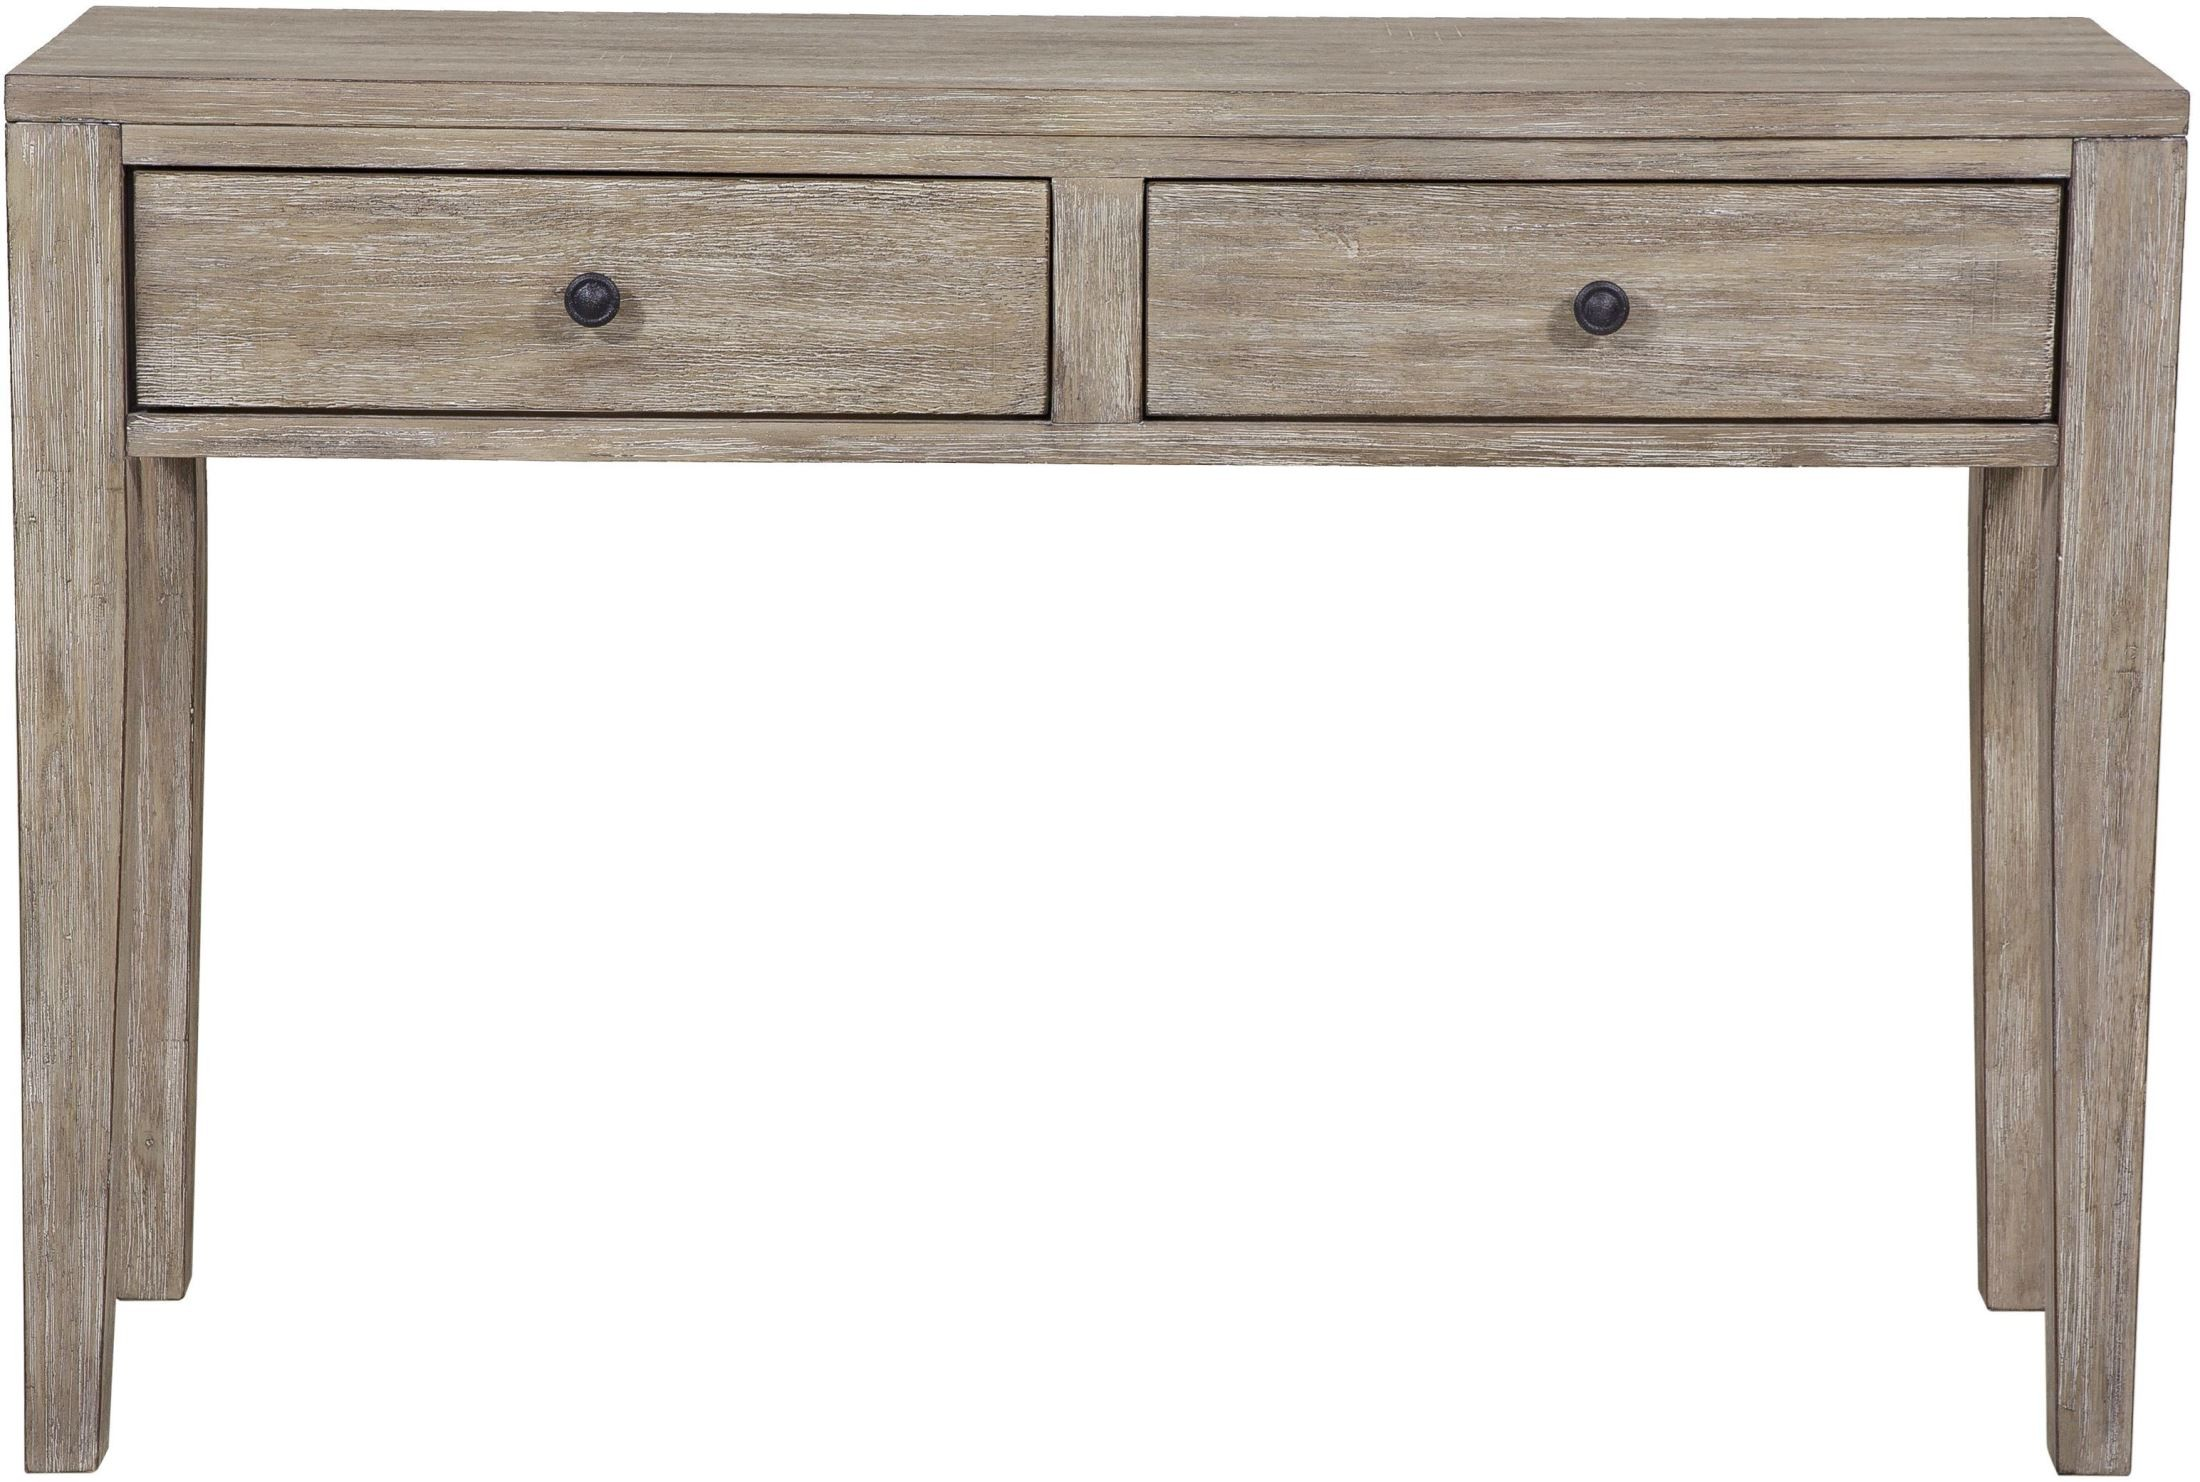 Distressed wood storage accent console table from pulaski